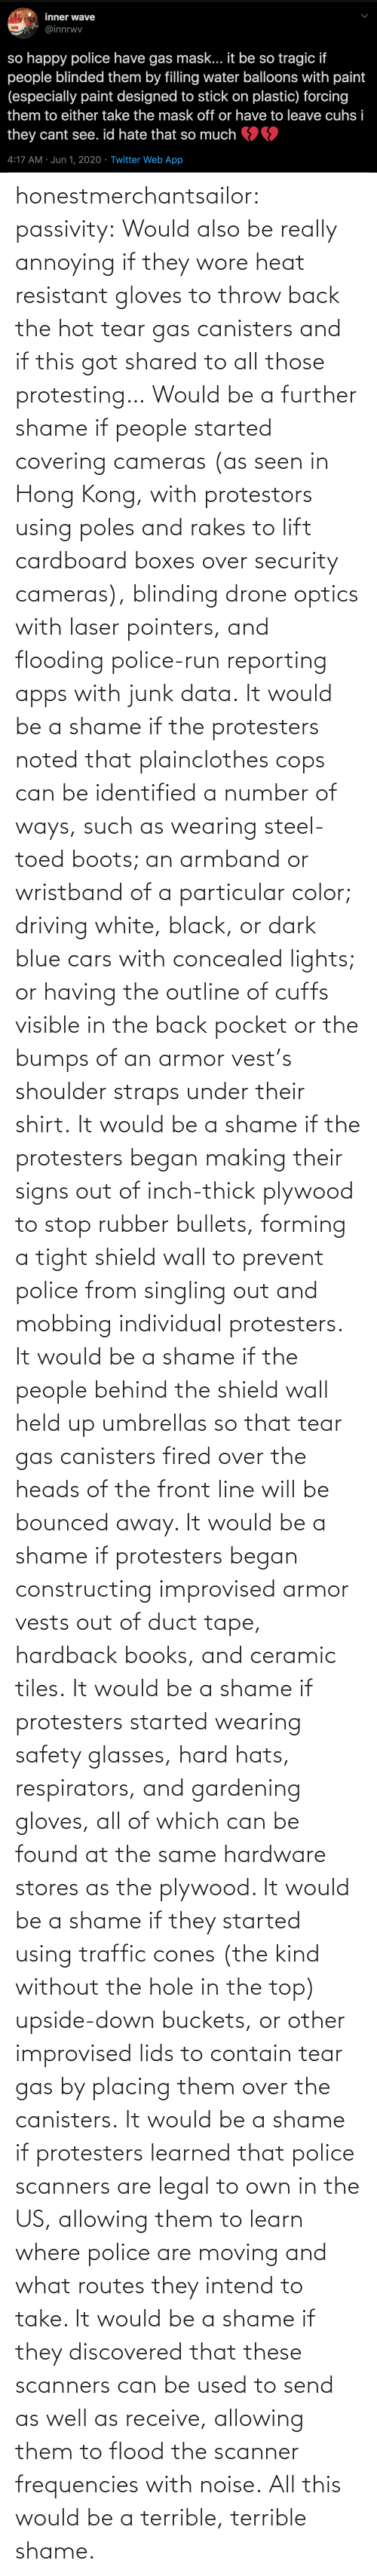 lift: honestmerchantsailor:  passivity: Would also be really annoying if they wore heat resistant gloves to throw back the hot tear gas canisters and if this got shared to all those protesting… Would be a further shame if people started covering cameras (as seen in Hong Kong, with protestors using poles and rakes to lift cardboard boxes over security cameras), blinding drone optics with laser pointers, and flooding police-run reporting apps with junk data. It would be a shame if the protesters noted that plainclothes cops can be identified a number of ways, such as wearing steel-toed boots; an armband or wristband of a particular color; driving white, black, or dark blue cars with concealed lights; or having the outline of cuffs visible in the back pocket or the bumps of an armor vest's shoulder straps under their shirt. It would be a shame if the protesters began making their signs out of inch-thick plywood to stop rubber bullets, forming a tight shield wall to prevent police from singling out and mobbing individual protesters. It would be a shame if the people behind the shield wall held up umbrellas so that tear gas canisters fired over the heads of the front line will be bounced away. It would be a shame if protesters began constructing improvised armor vests out of duct tape, hardback books, and ceramic tiles. It would be a shame if protesters started wearing safety glasses, hard hats, respirators, and gardening gloves, all of which can be found at the same hardware stores as the plywood. It would be a shame if they started using traffic cones (the kind without the hole in the top) upside-down buckets, or other improvised lids to contain tear gas by placing them over the canisters. It would be a shame if protesters learned that police scanners are legal to own in the US, allowing them to learn where police are moving and what routes they intend to take. It would be a shame if they discovered that these scanners can be used to send as well as receive, allowing them to flood the scanner frequencies with noise. All this would be a terrible, terrible shame.